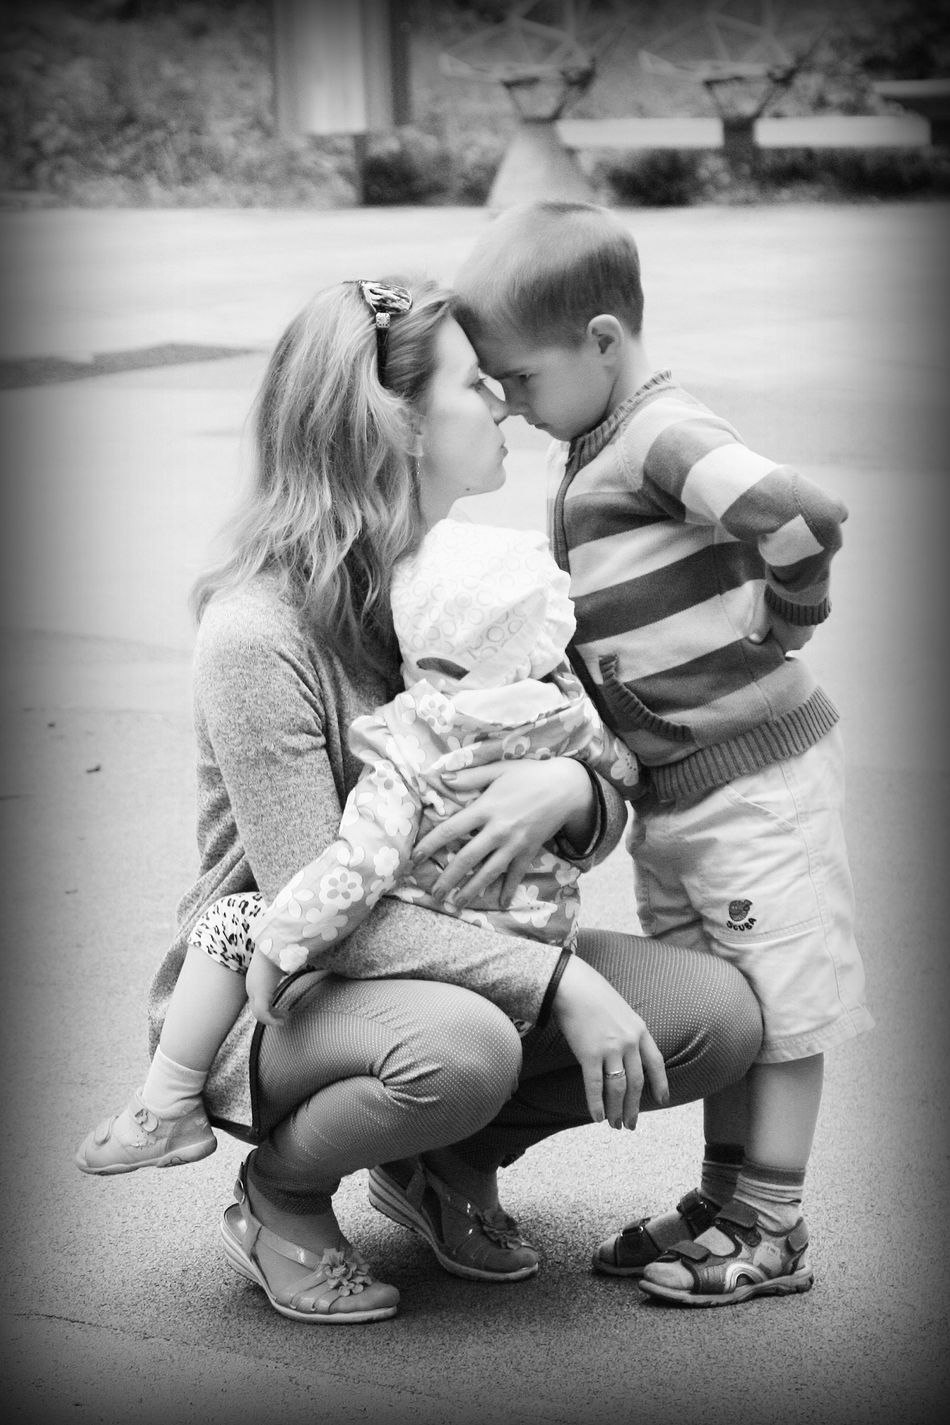 Affectionate Baby Babyhood Bonding Care Child Childhood Cute Daughter Day Embracing Family Family With One Child Females Full Length Holding Love Mother New Life Newborn Pacifier Real People Son Togetherness Women